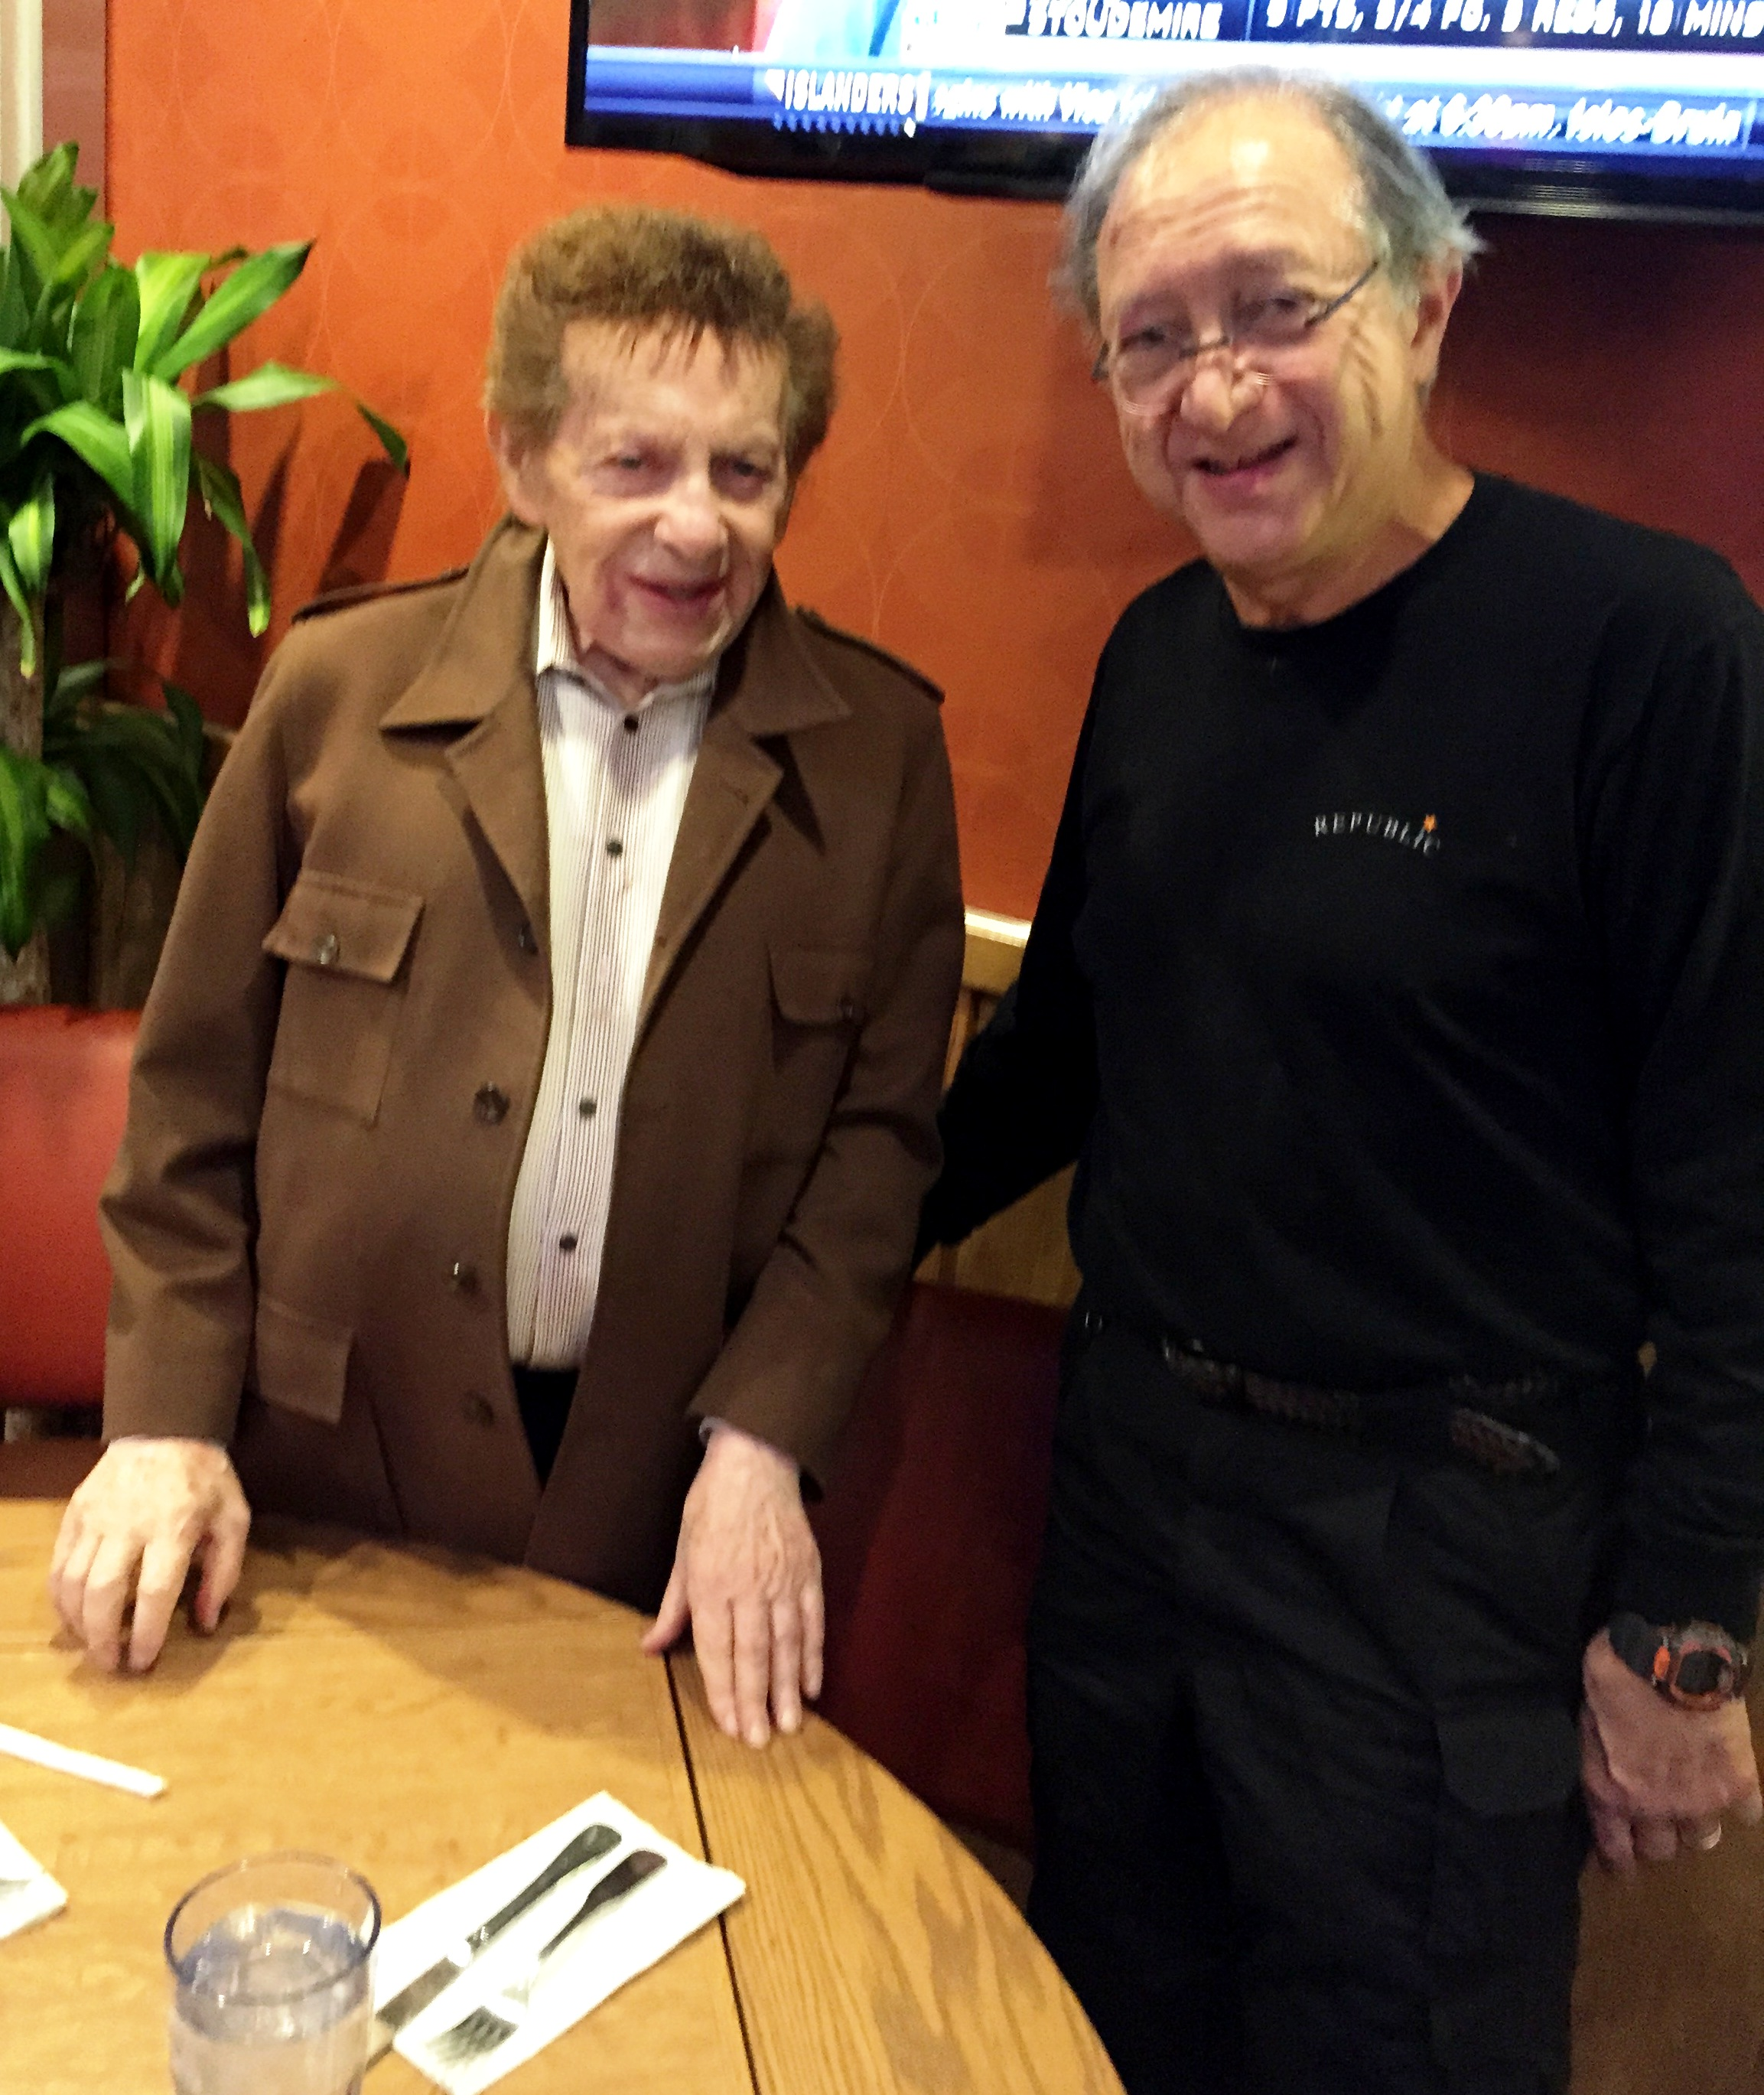 Jackie Mason and Harlan at the Westway Diner.JPG